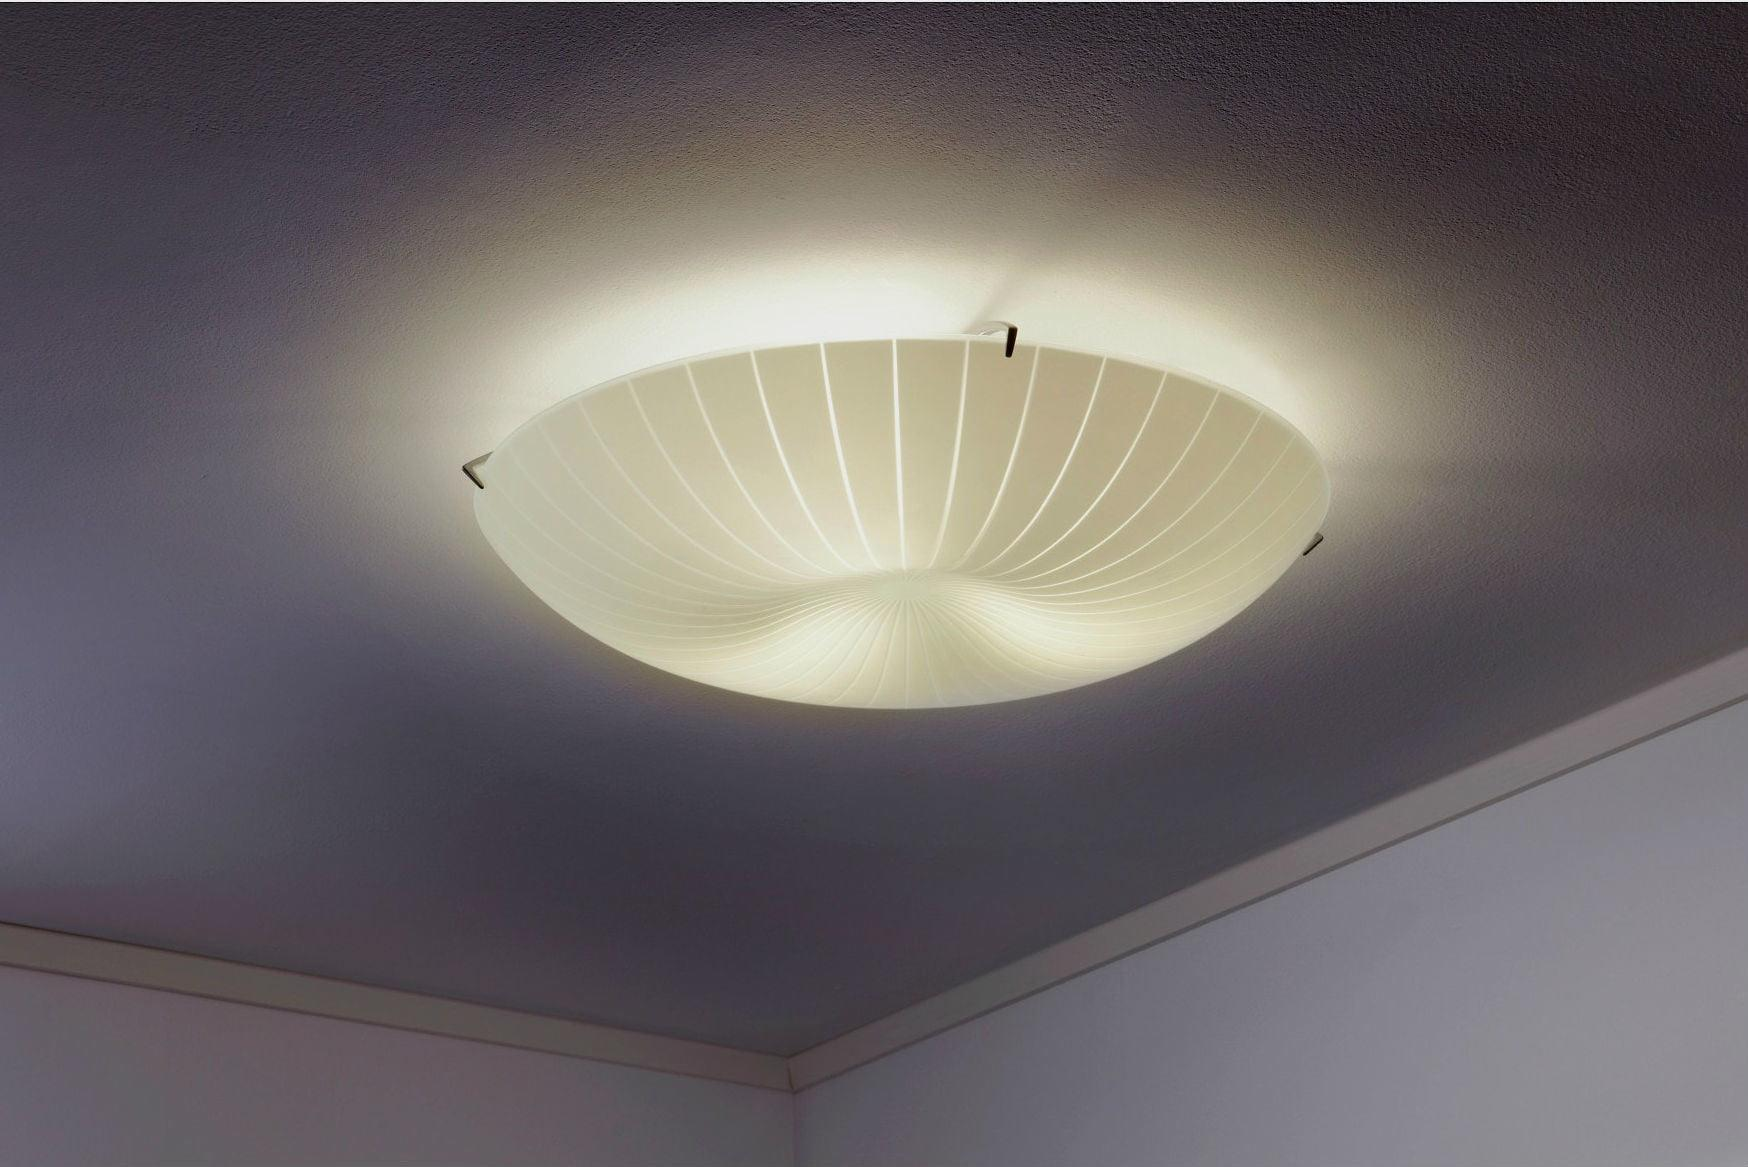 Ikea Issues Recall Of Por Calypso Ceiling Lamp Due To